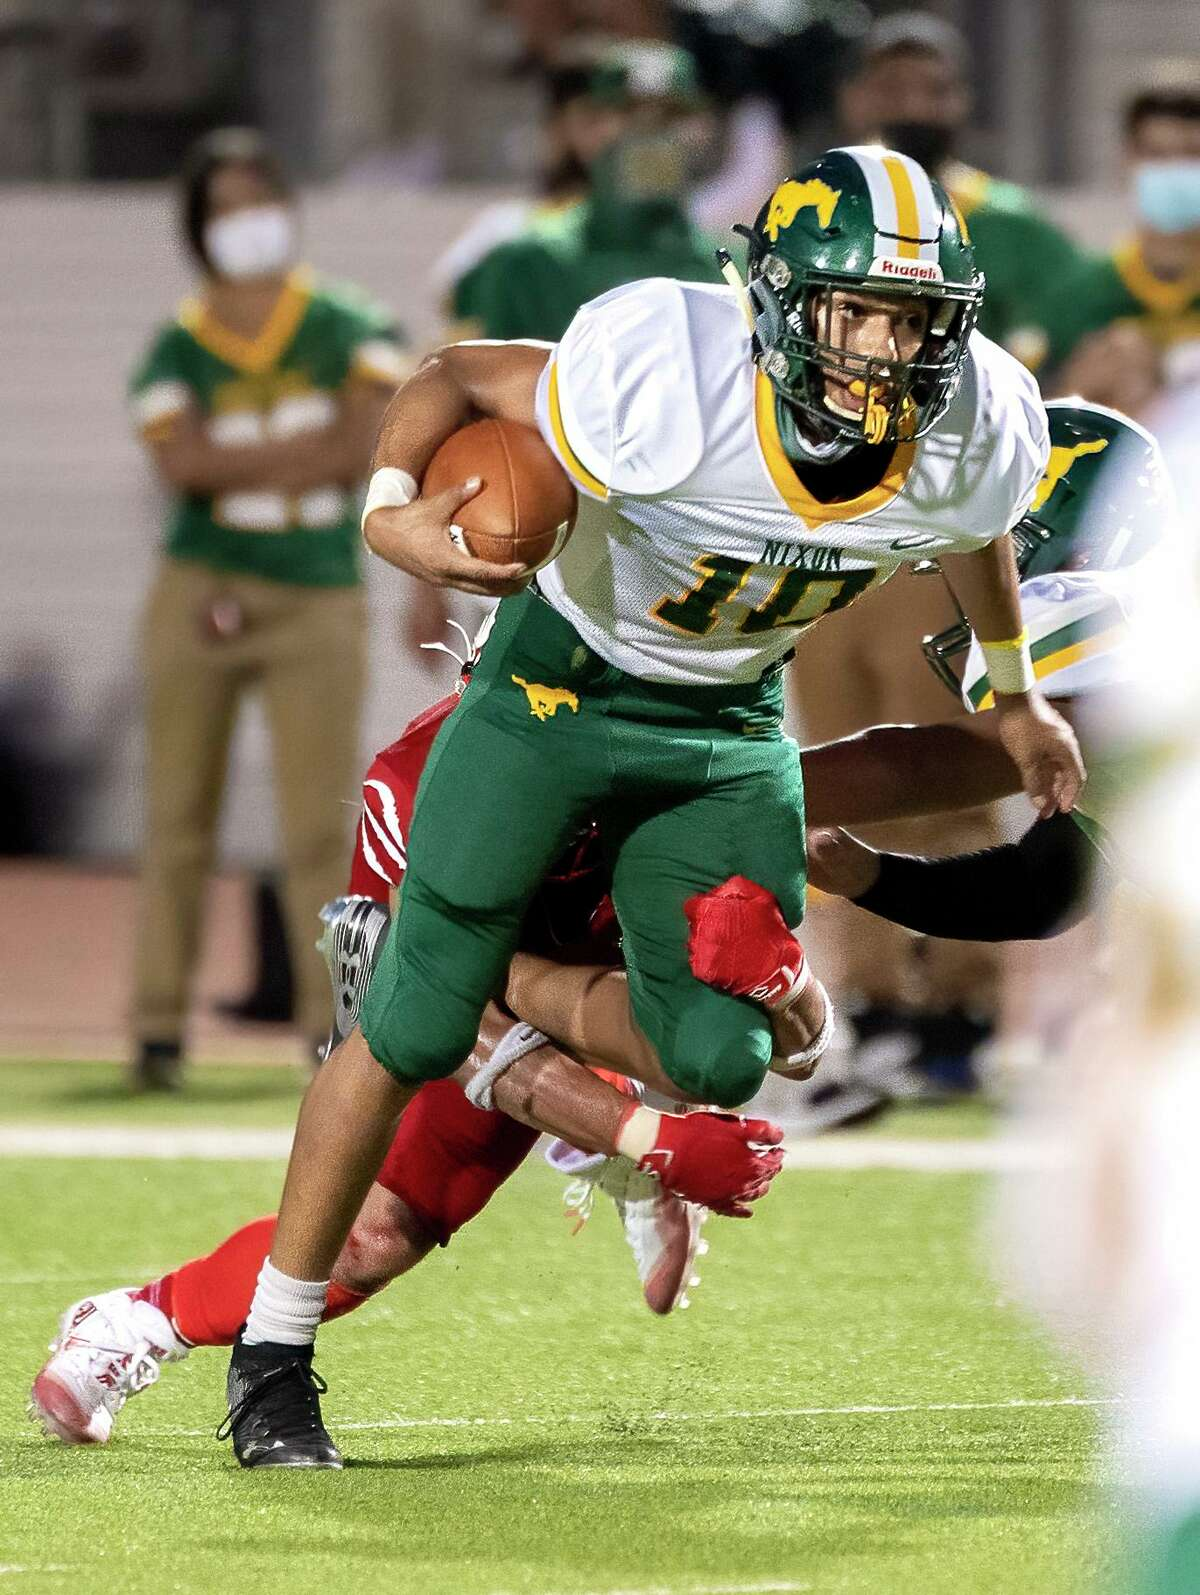 Ivan Diaz and the Nixon Mustangs are set to face off against the Cigarroa Toros on Friday.